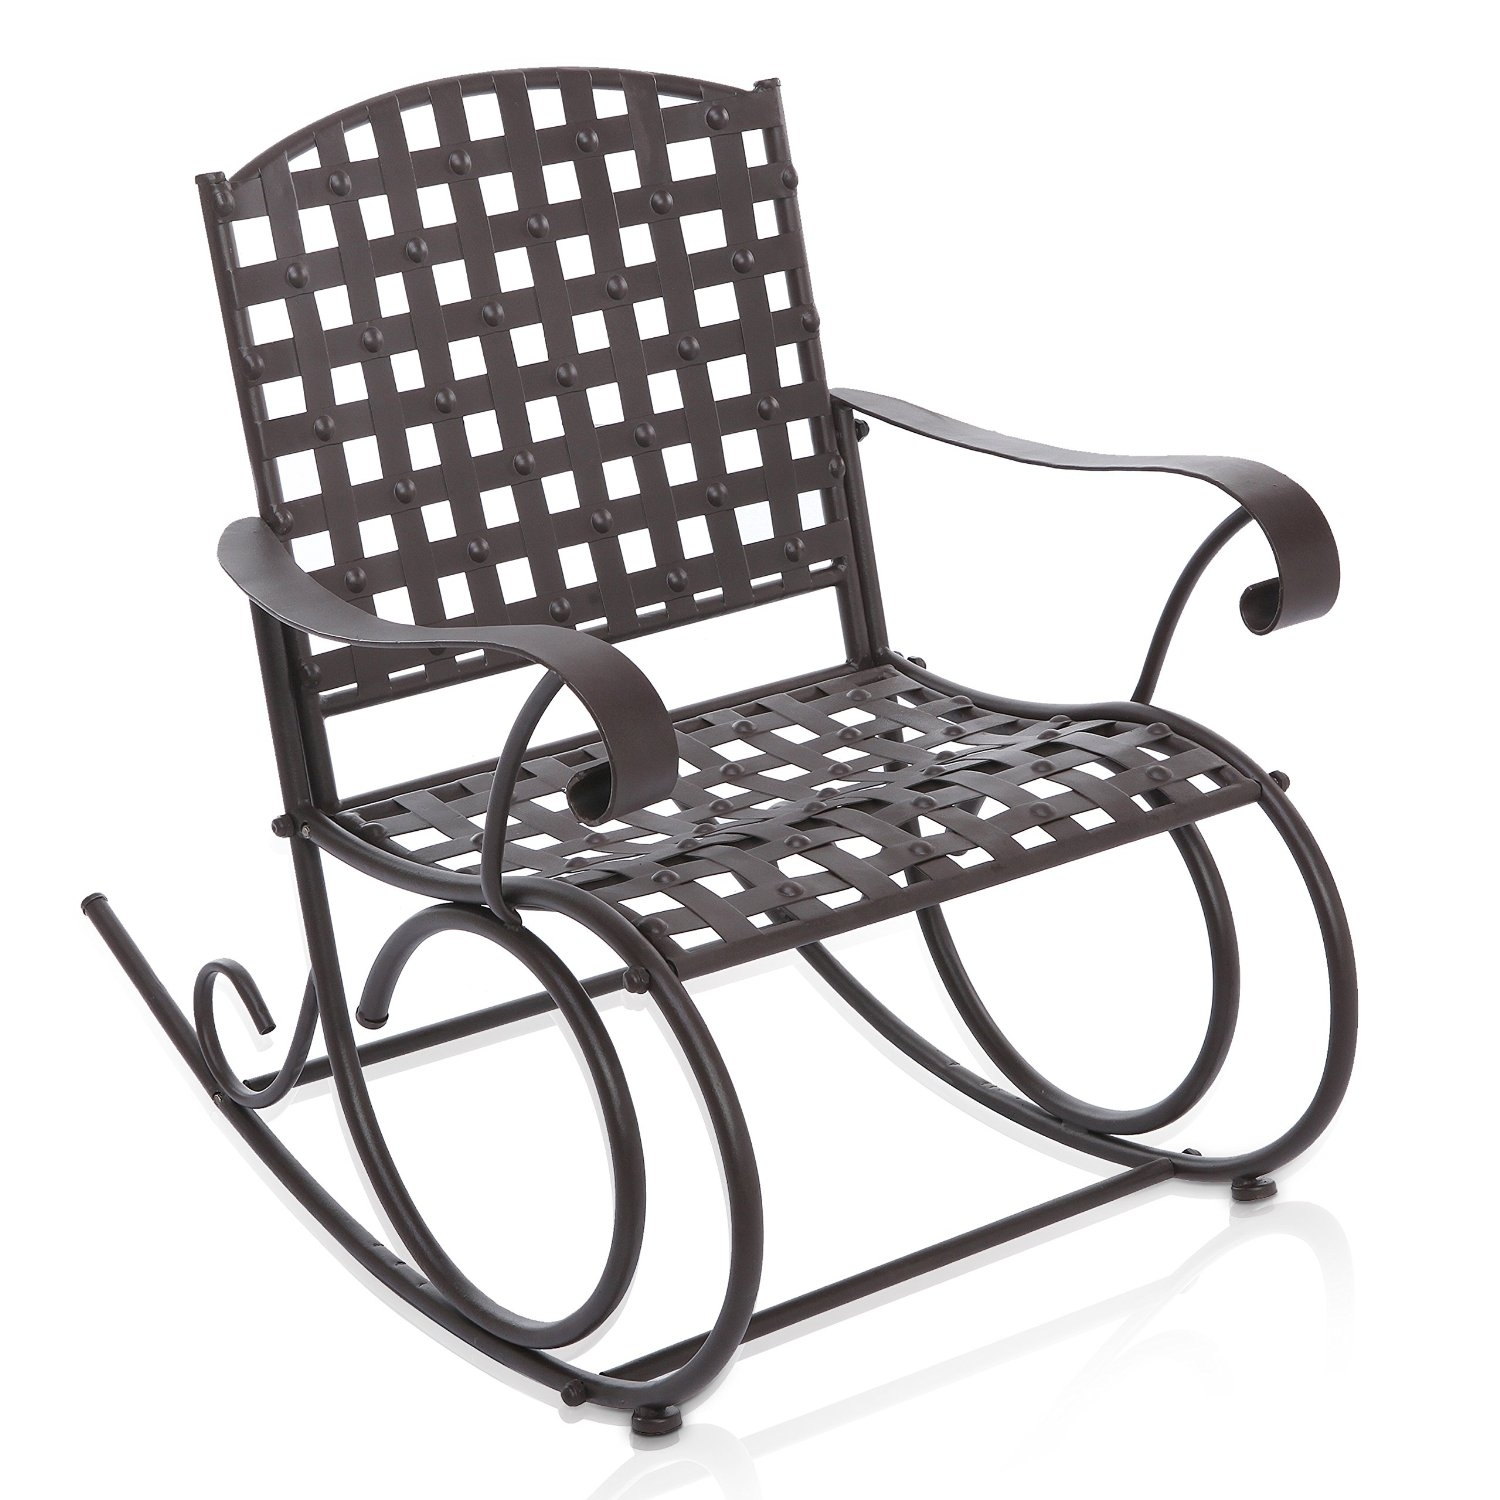 Buy Decorative Dark Brown Woven Metal Rocking Chair / Outdoor Patio With Regard To Outdoor Patio Metal Rocking Chairs (#3 of 15)